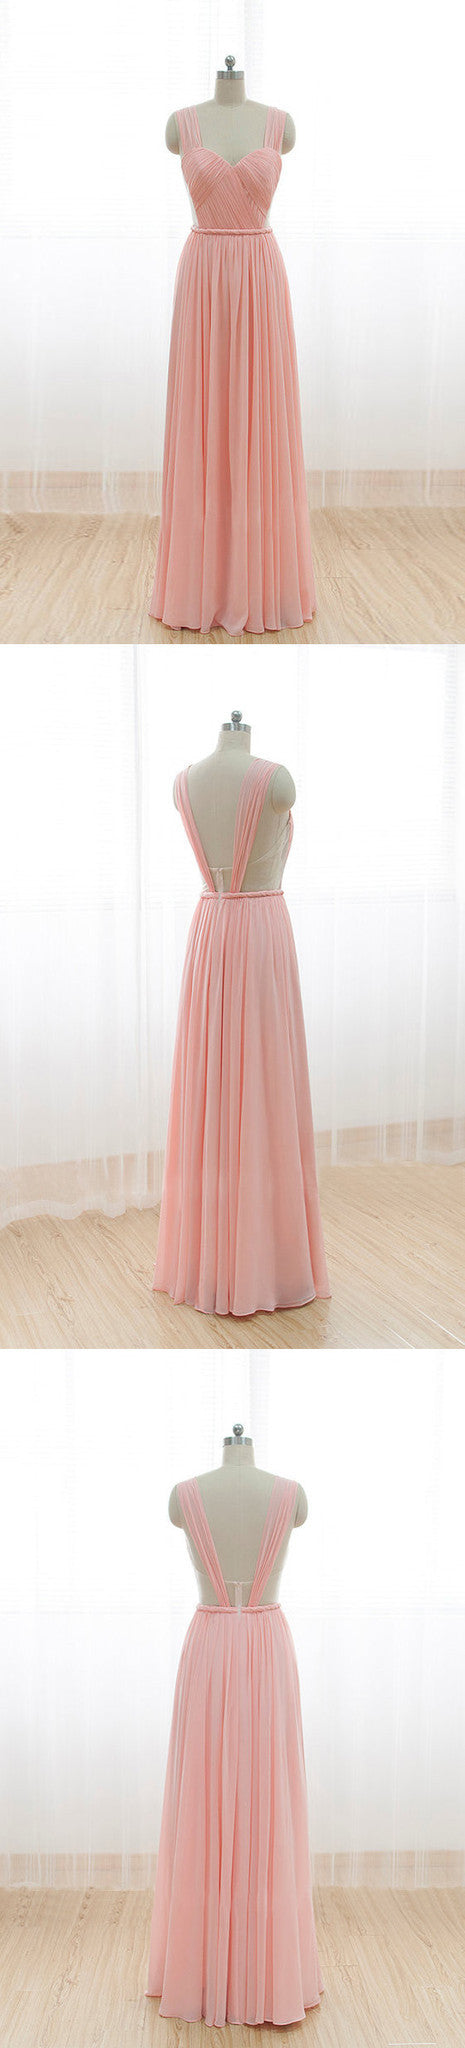 Long Chiffon Pink Sweet Heart Open Back Bridesmaid Dresses, BG51245 - Bubble Gown